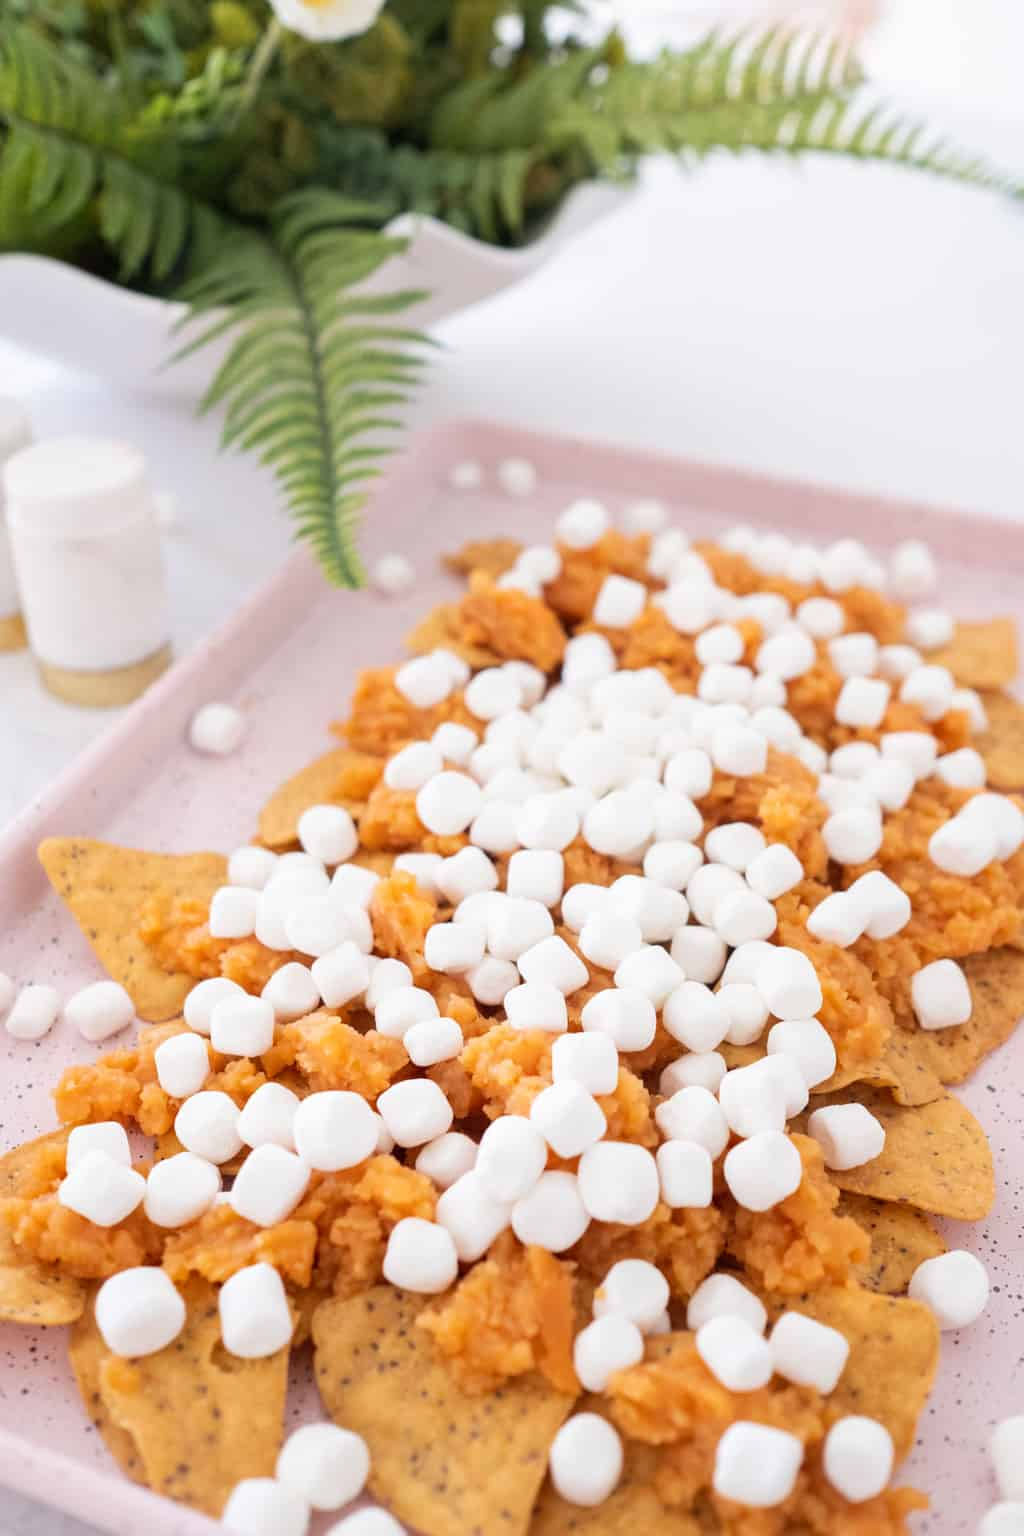 photo of the marshmallow toppings in the Sweet Potatoes Nacho recipe by top Houston lifestyle blogger Ashley Rose of Sugar & Cloth